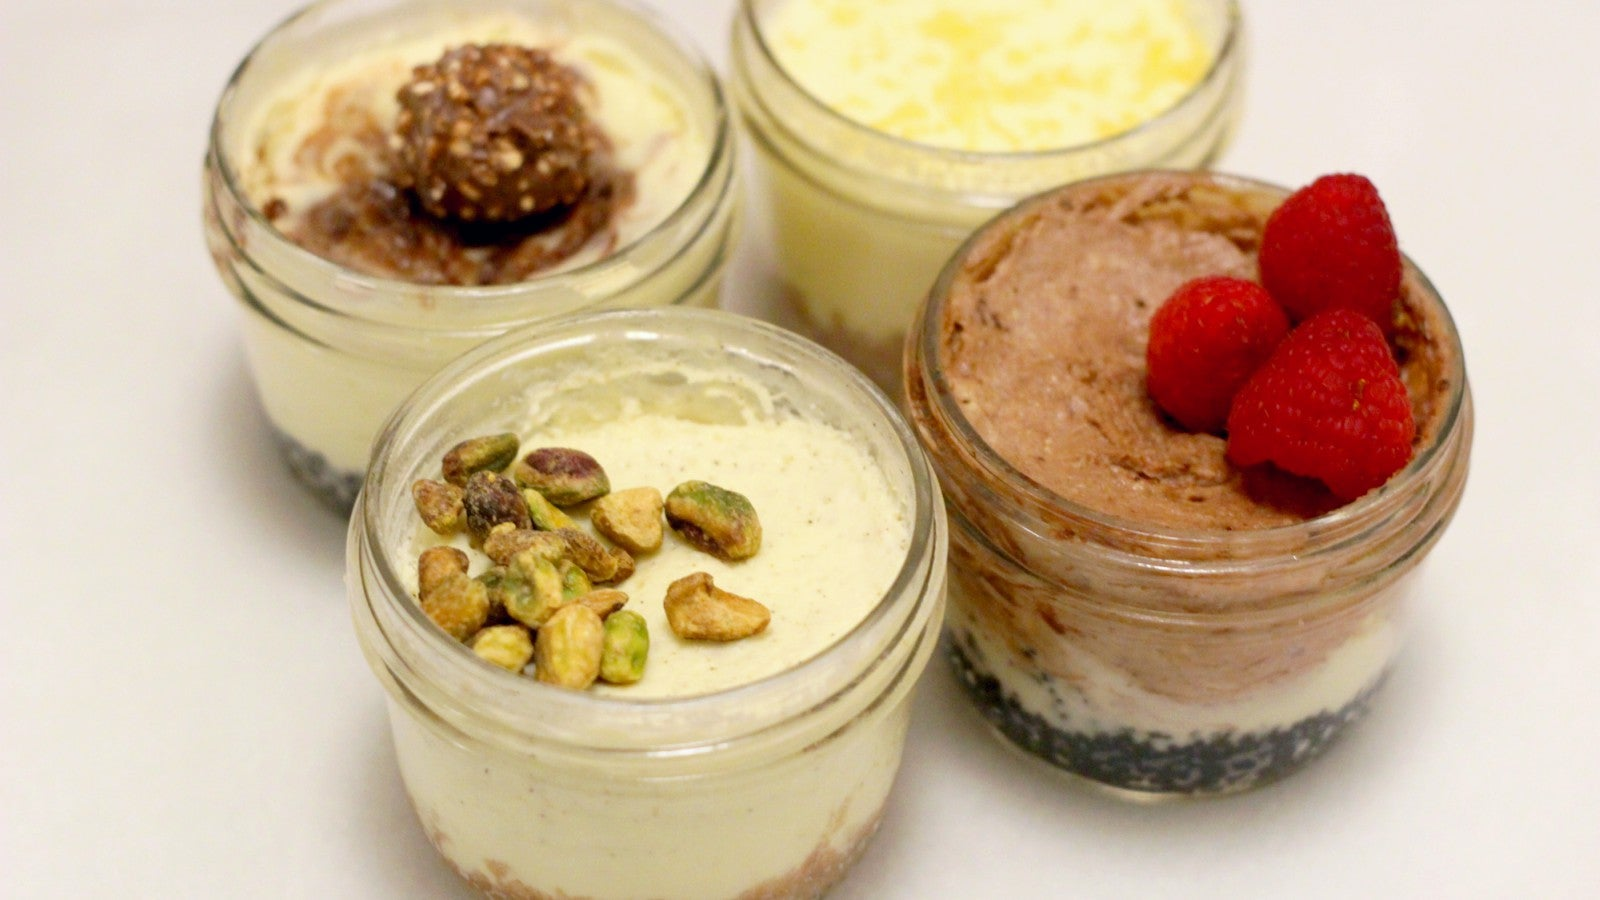 Make A Four-Flavour Cheesecake Sampler In Your Pressure Cooker